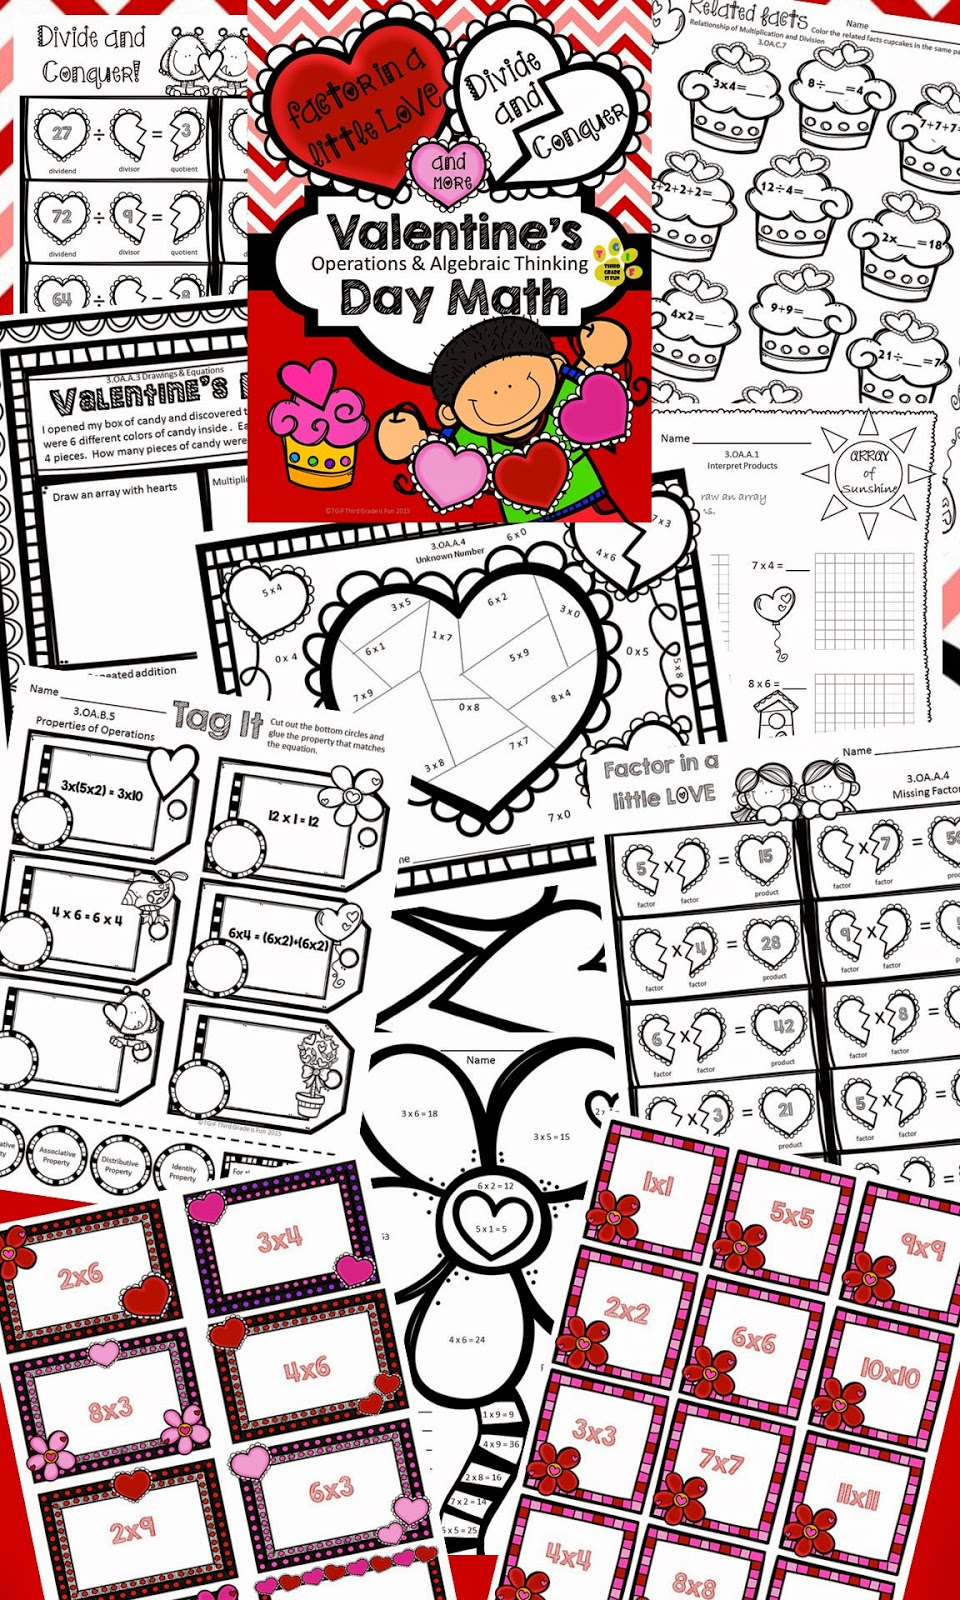 https://www.teacherspayteachers.com/Product/Valentines-Day-Multiplication-and-Division-aligned-to-CCSS-1663575